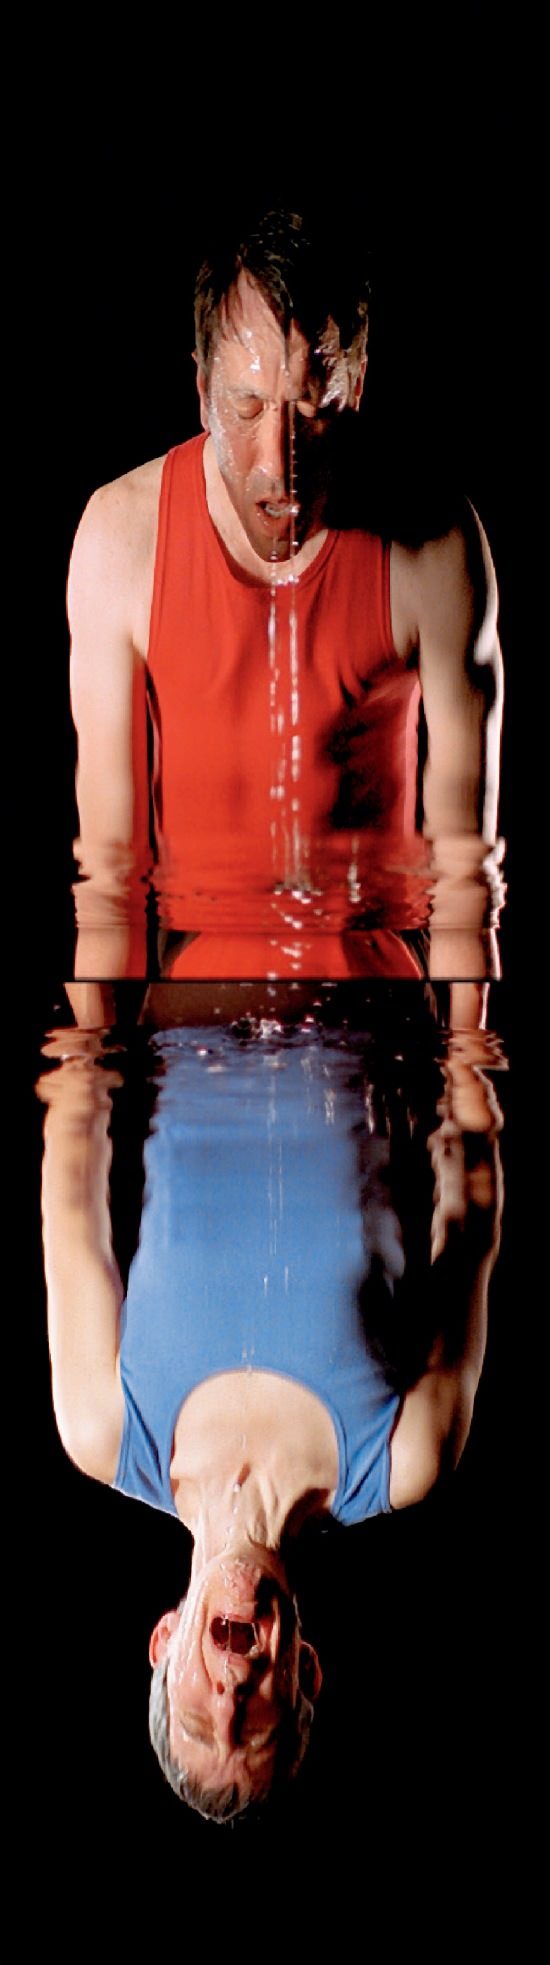 Bill Viola: Surrender.jpg